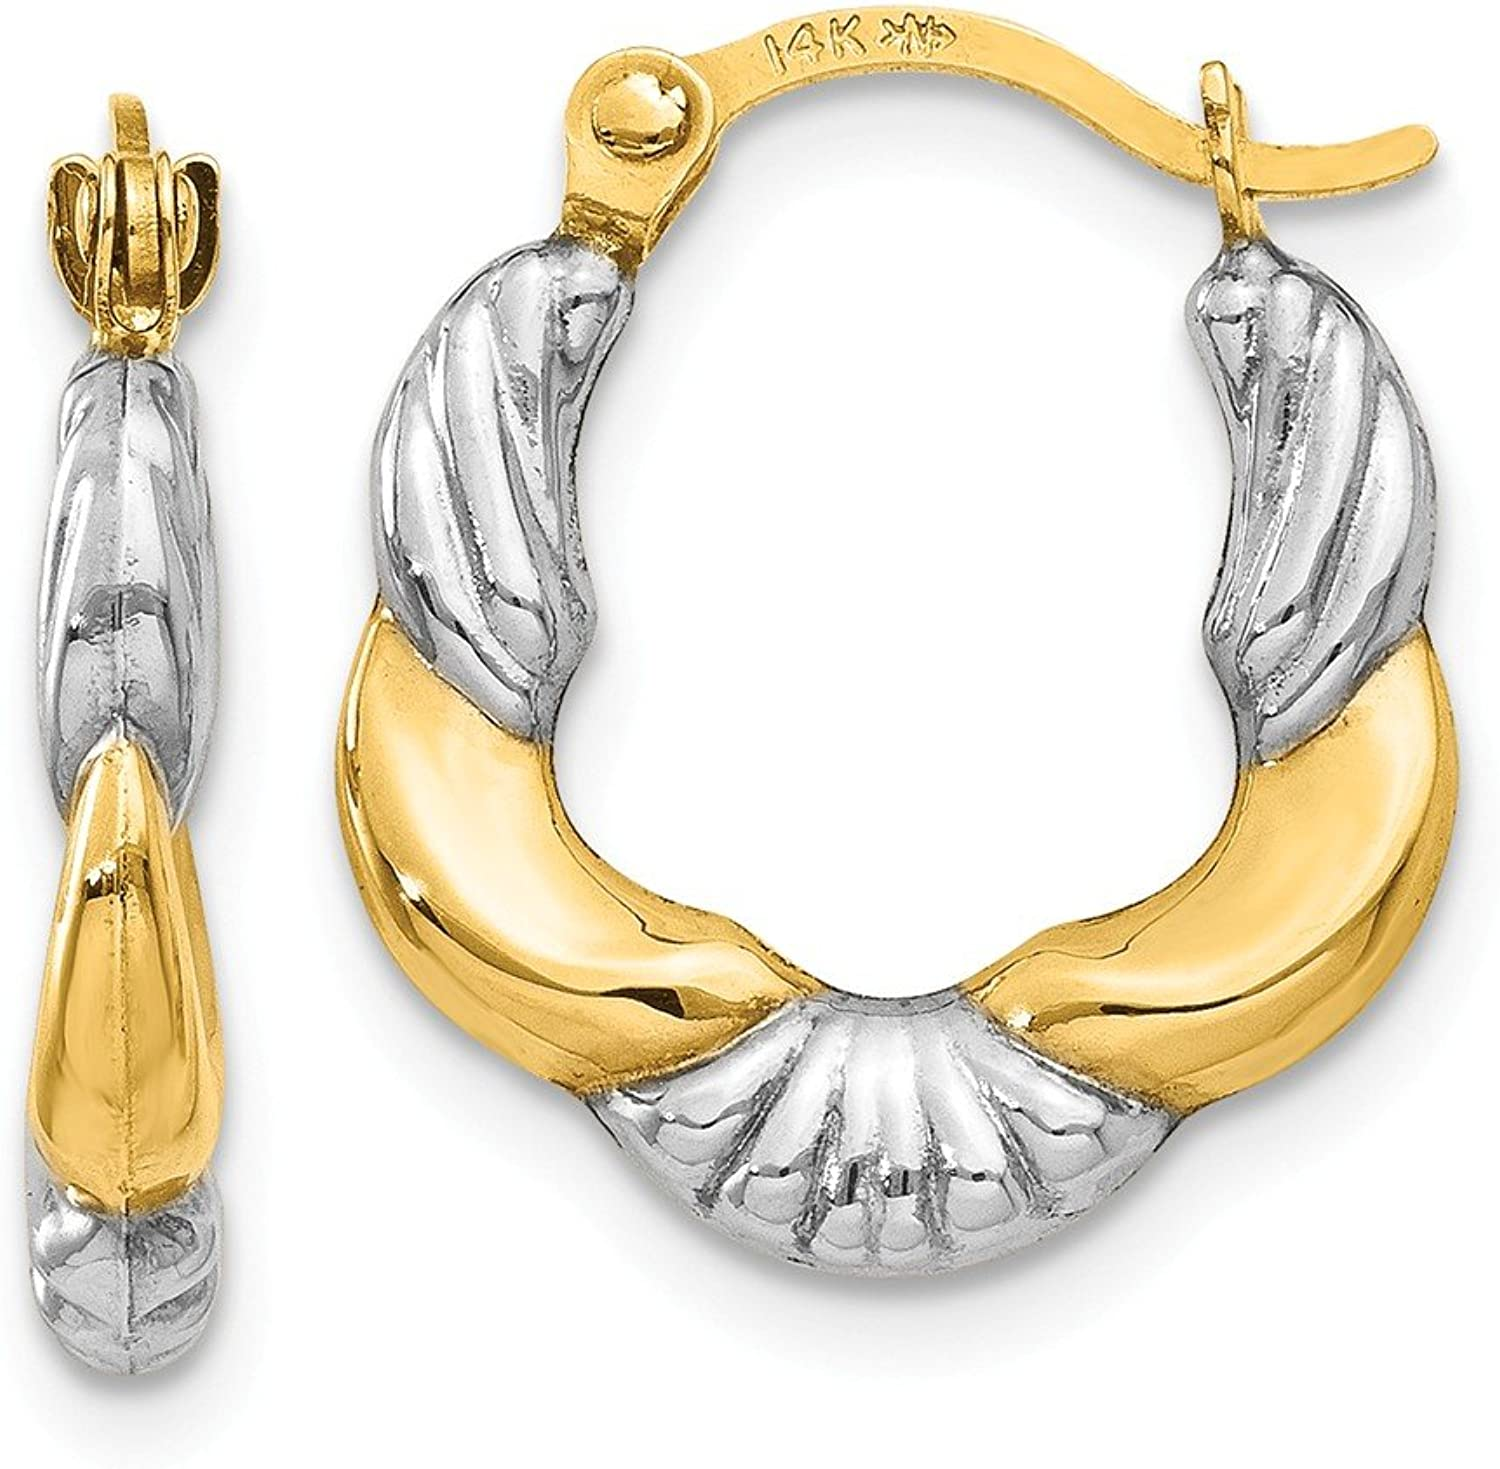 Beautiful rhodium plated gold and silver 14K rhodiumplatedgoldandsilver 14K & Rhodium Hollow Scalloped Hoop Earrings